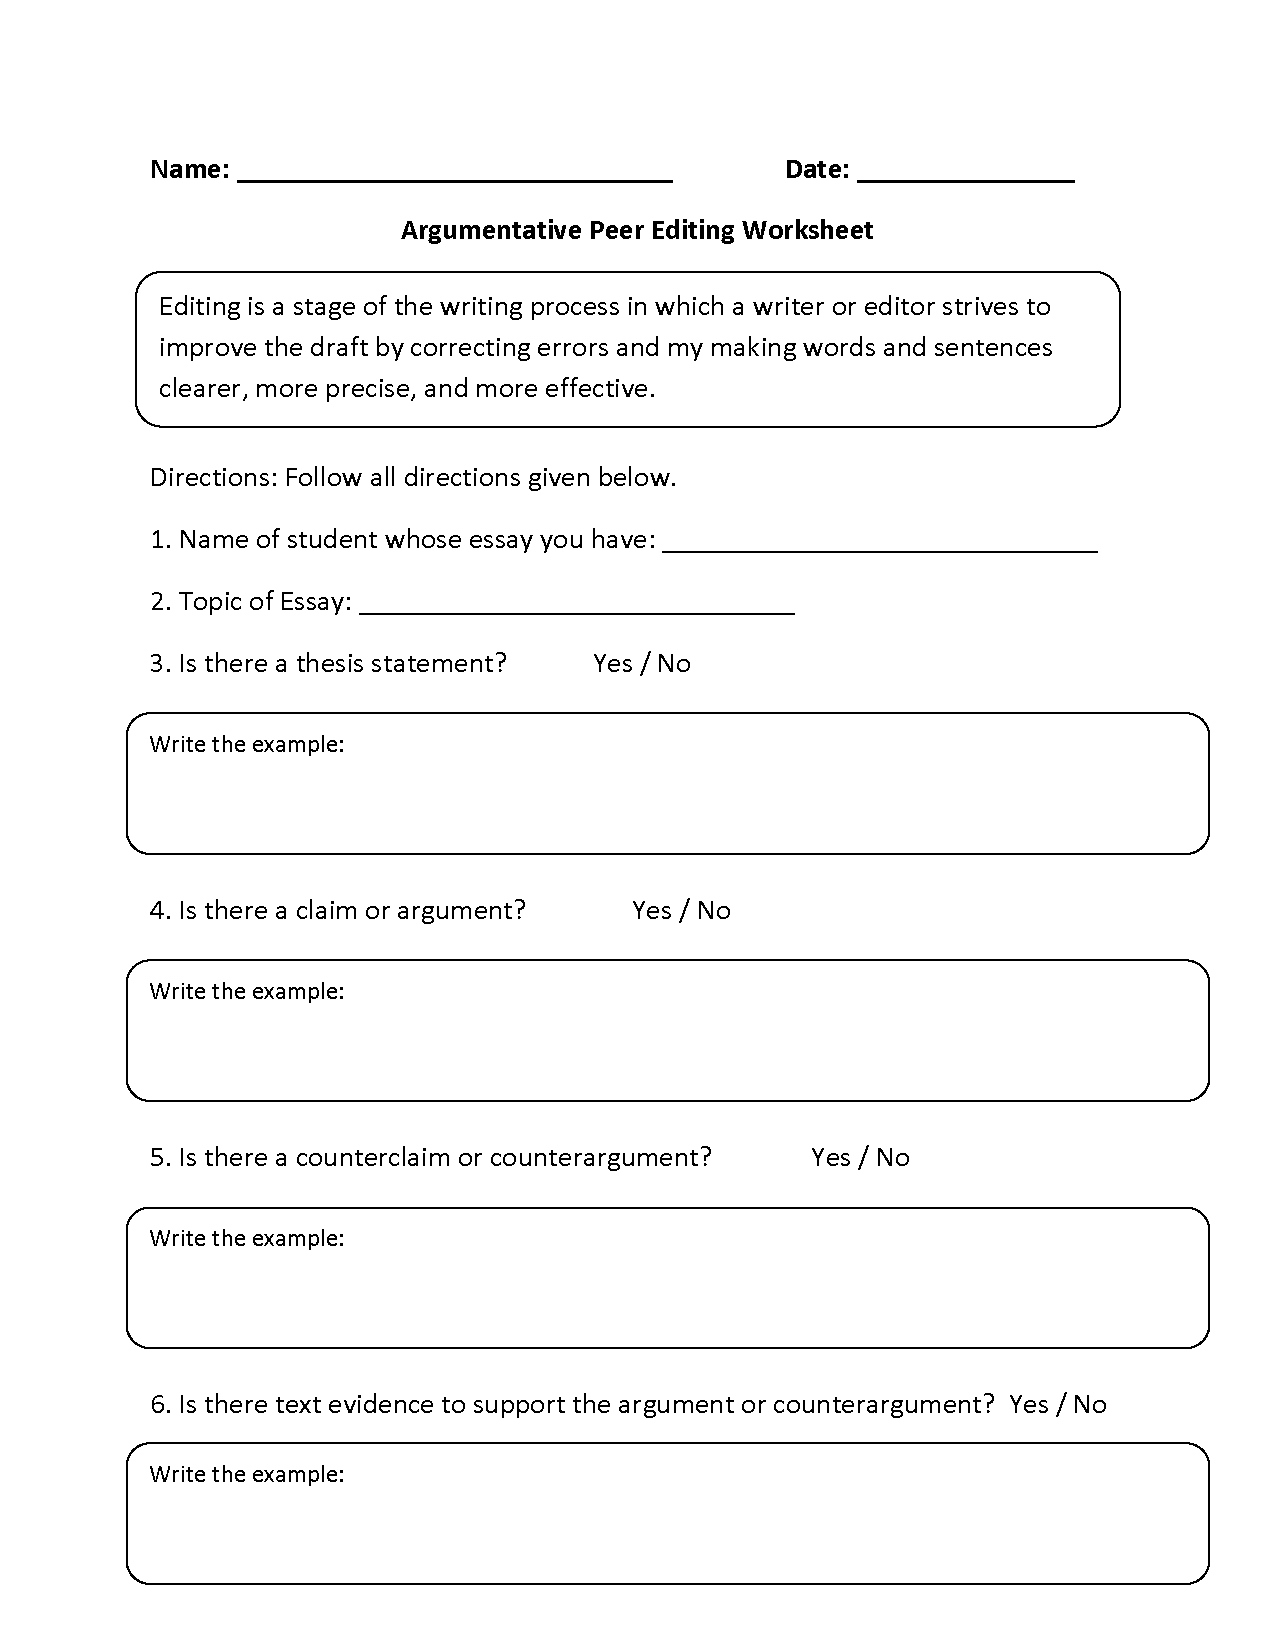 Argumentative Peer Editing Worksheets